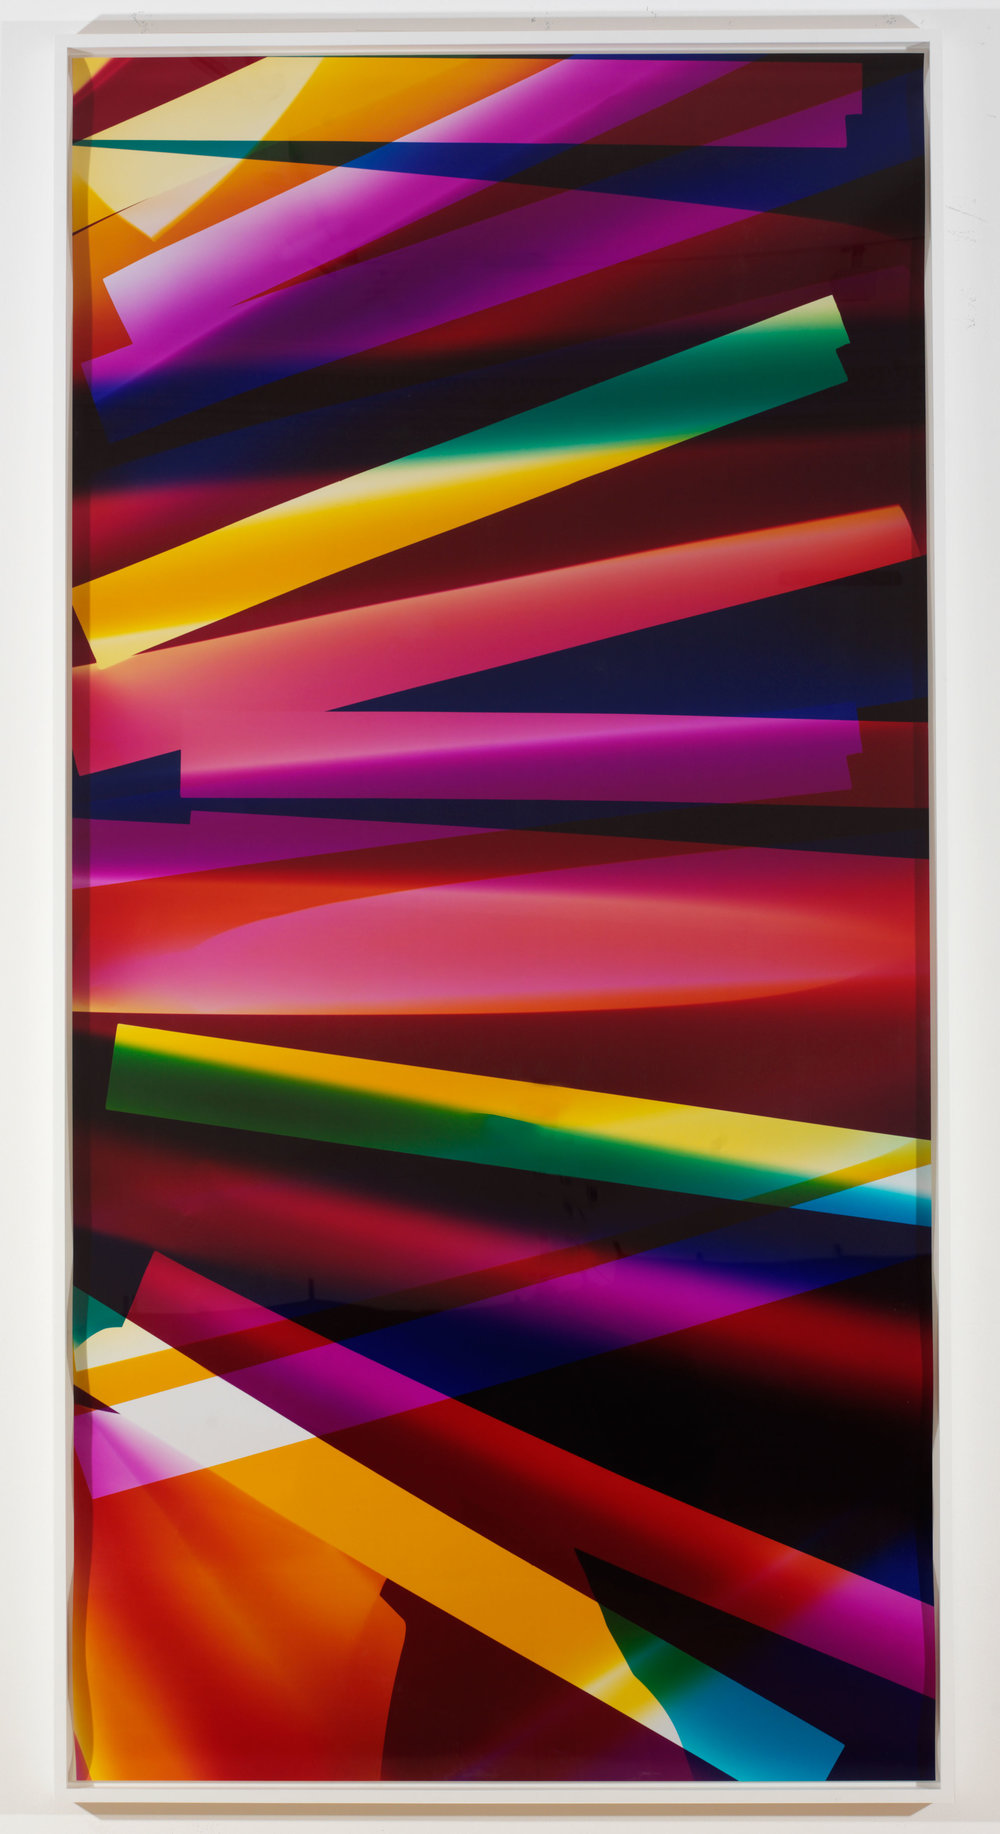 Six Magnet, Three Color Curl (CMY: Irvine, California, September 6th 2009, Fuji Crystal Archive Type C)    2009  Color photographic paper  101 x 50 inches   Three-Color Curls, 2008–2013    Production Stills, 2009